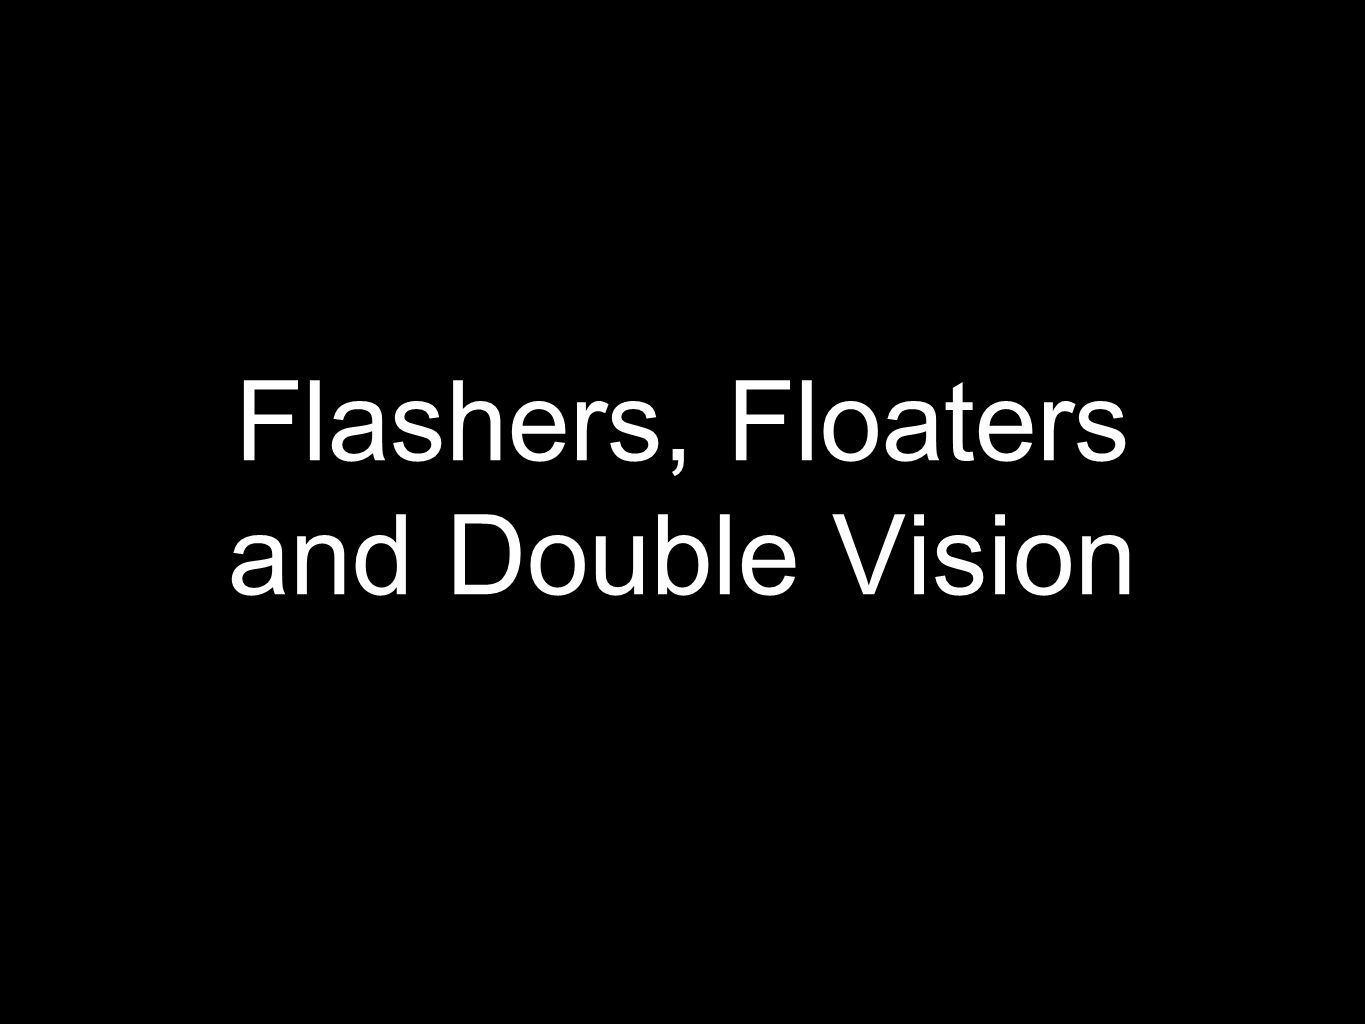 Flashers, Floaters and Double Vision